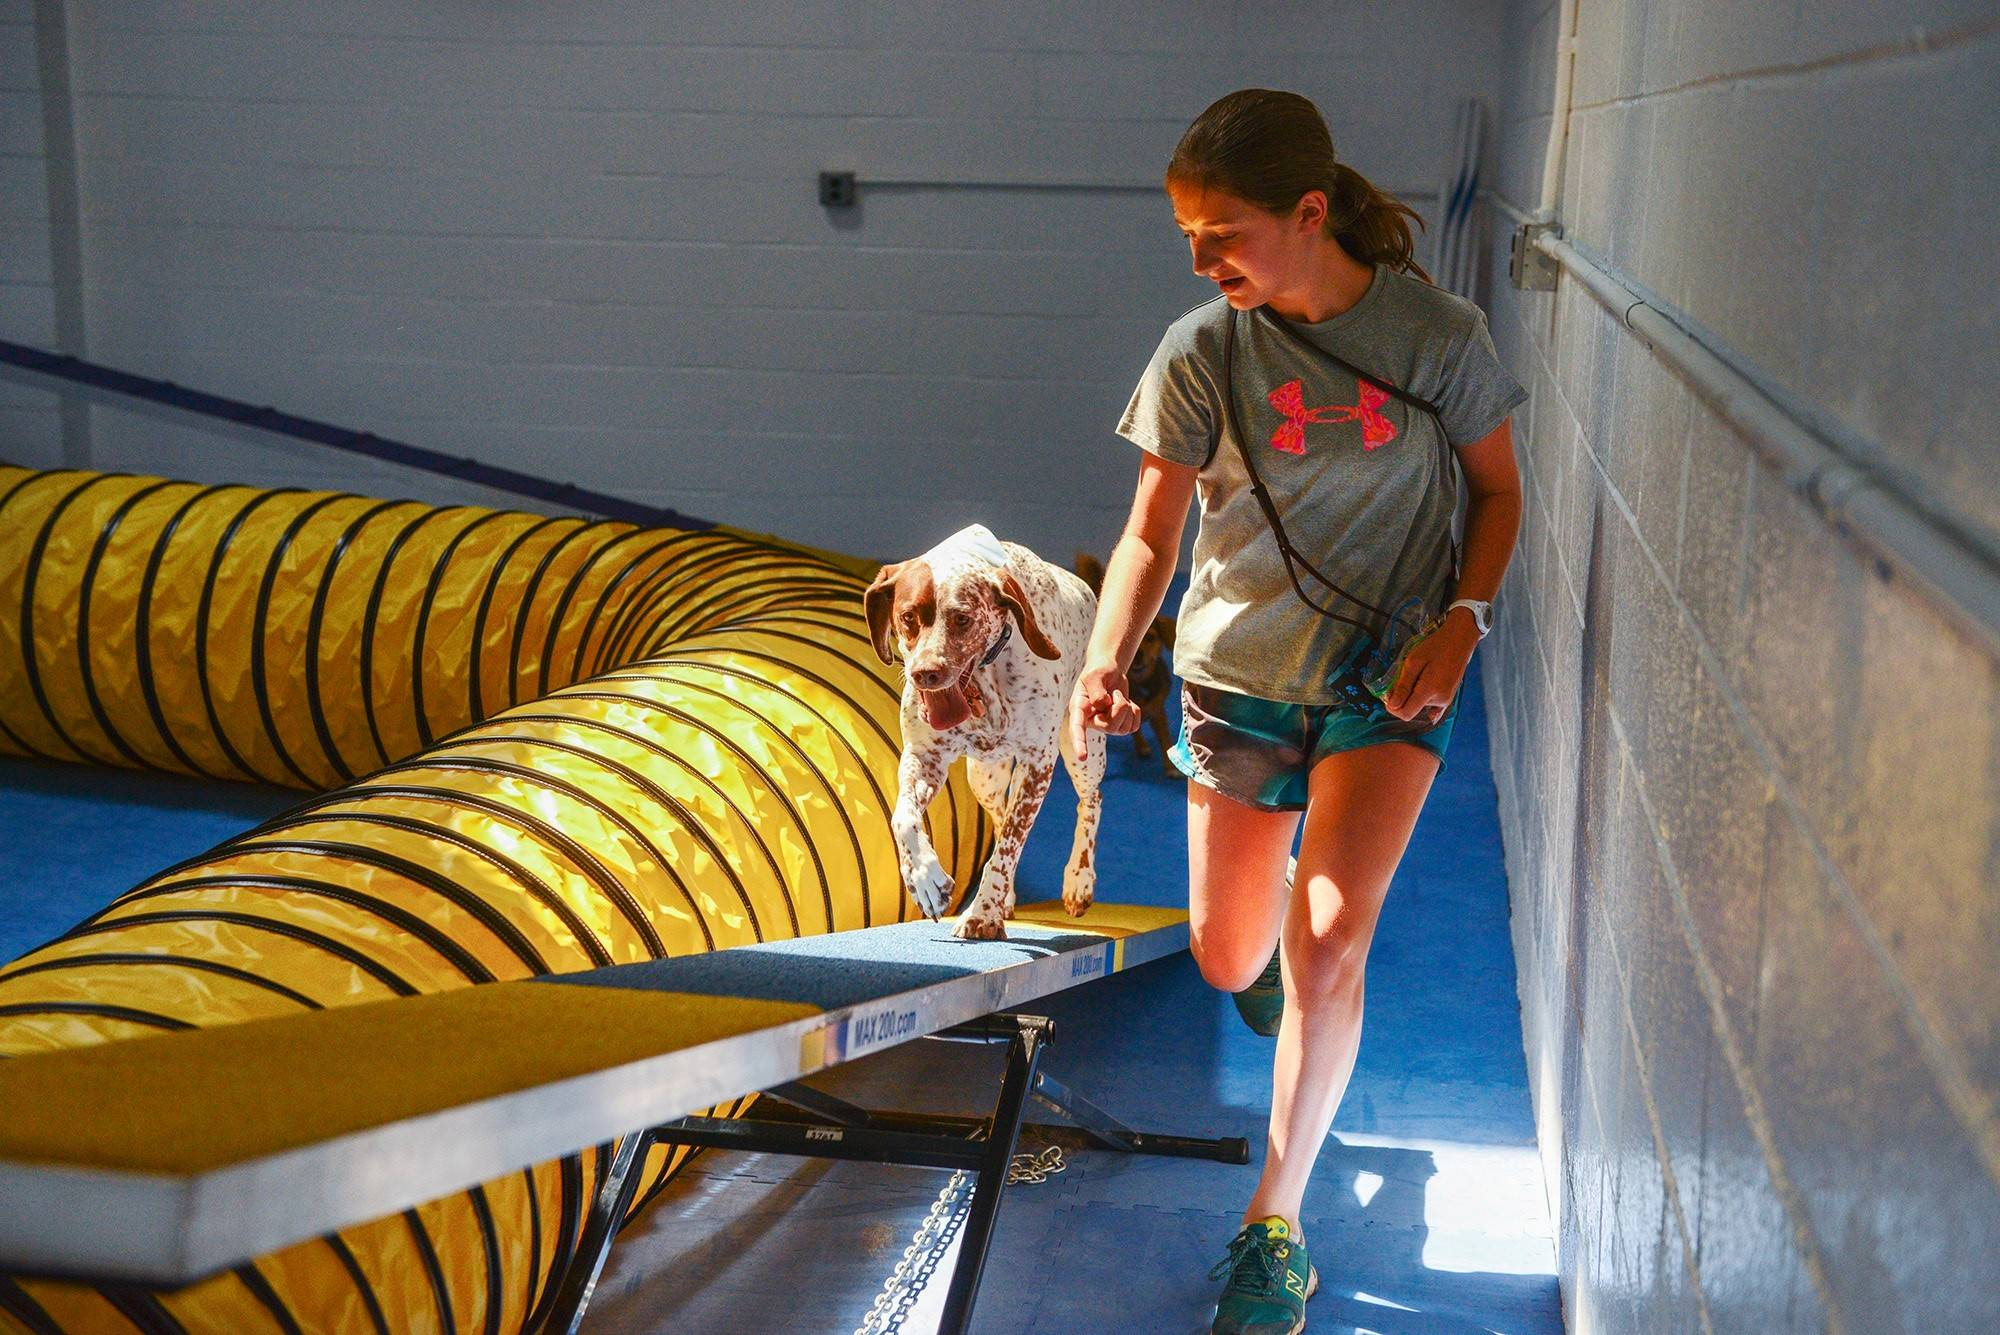 Leah Nickelsburg helps Luna burn calories on the agility course at Frolick Dogs. Industry observers think that the idea of dog gyms will be embraced in a country that spends more than $300 million a year on pet Halloween costumes.